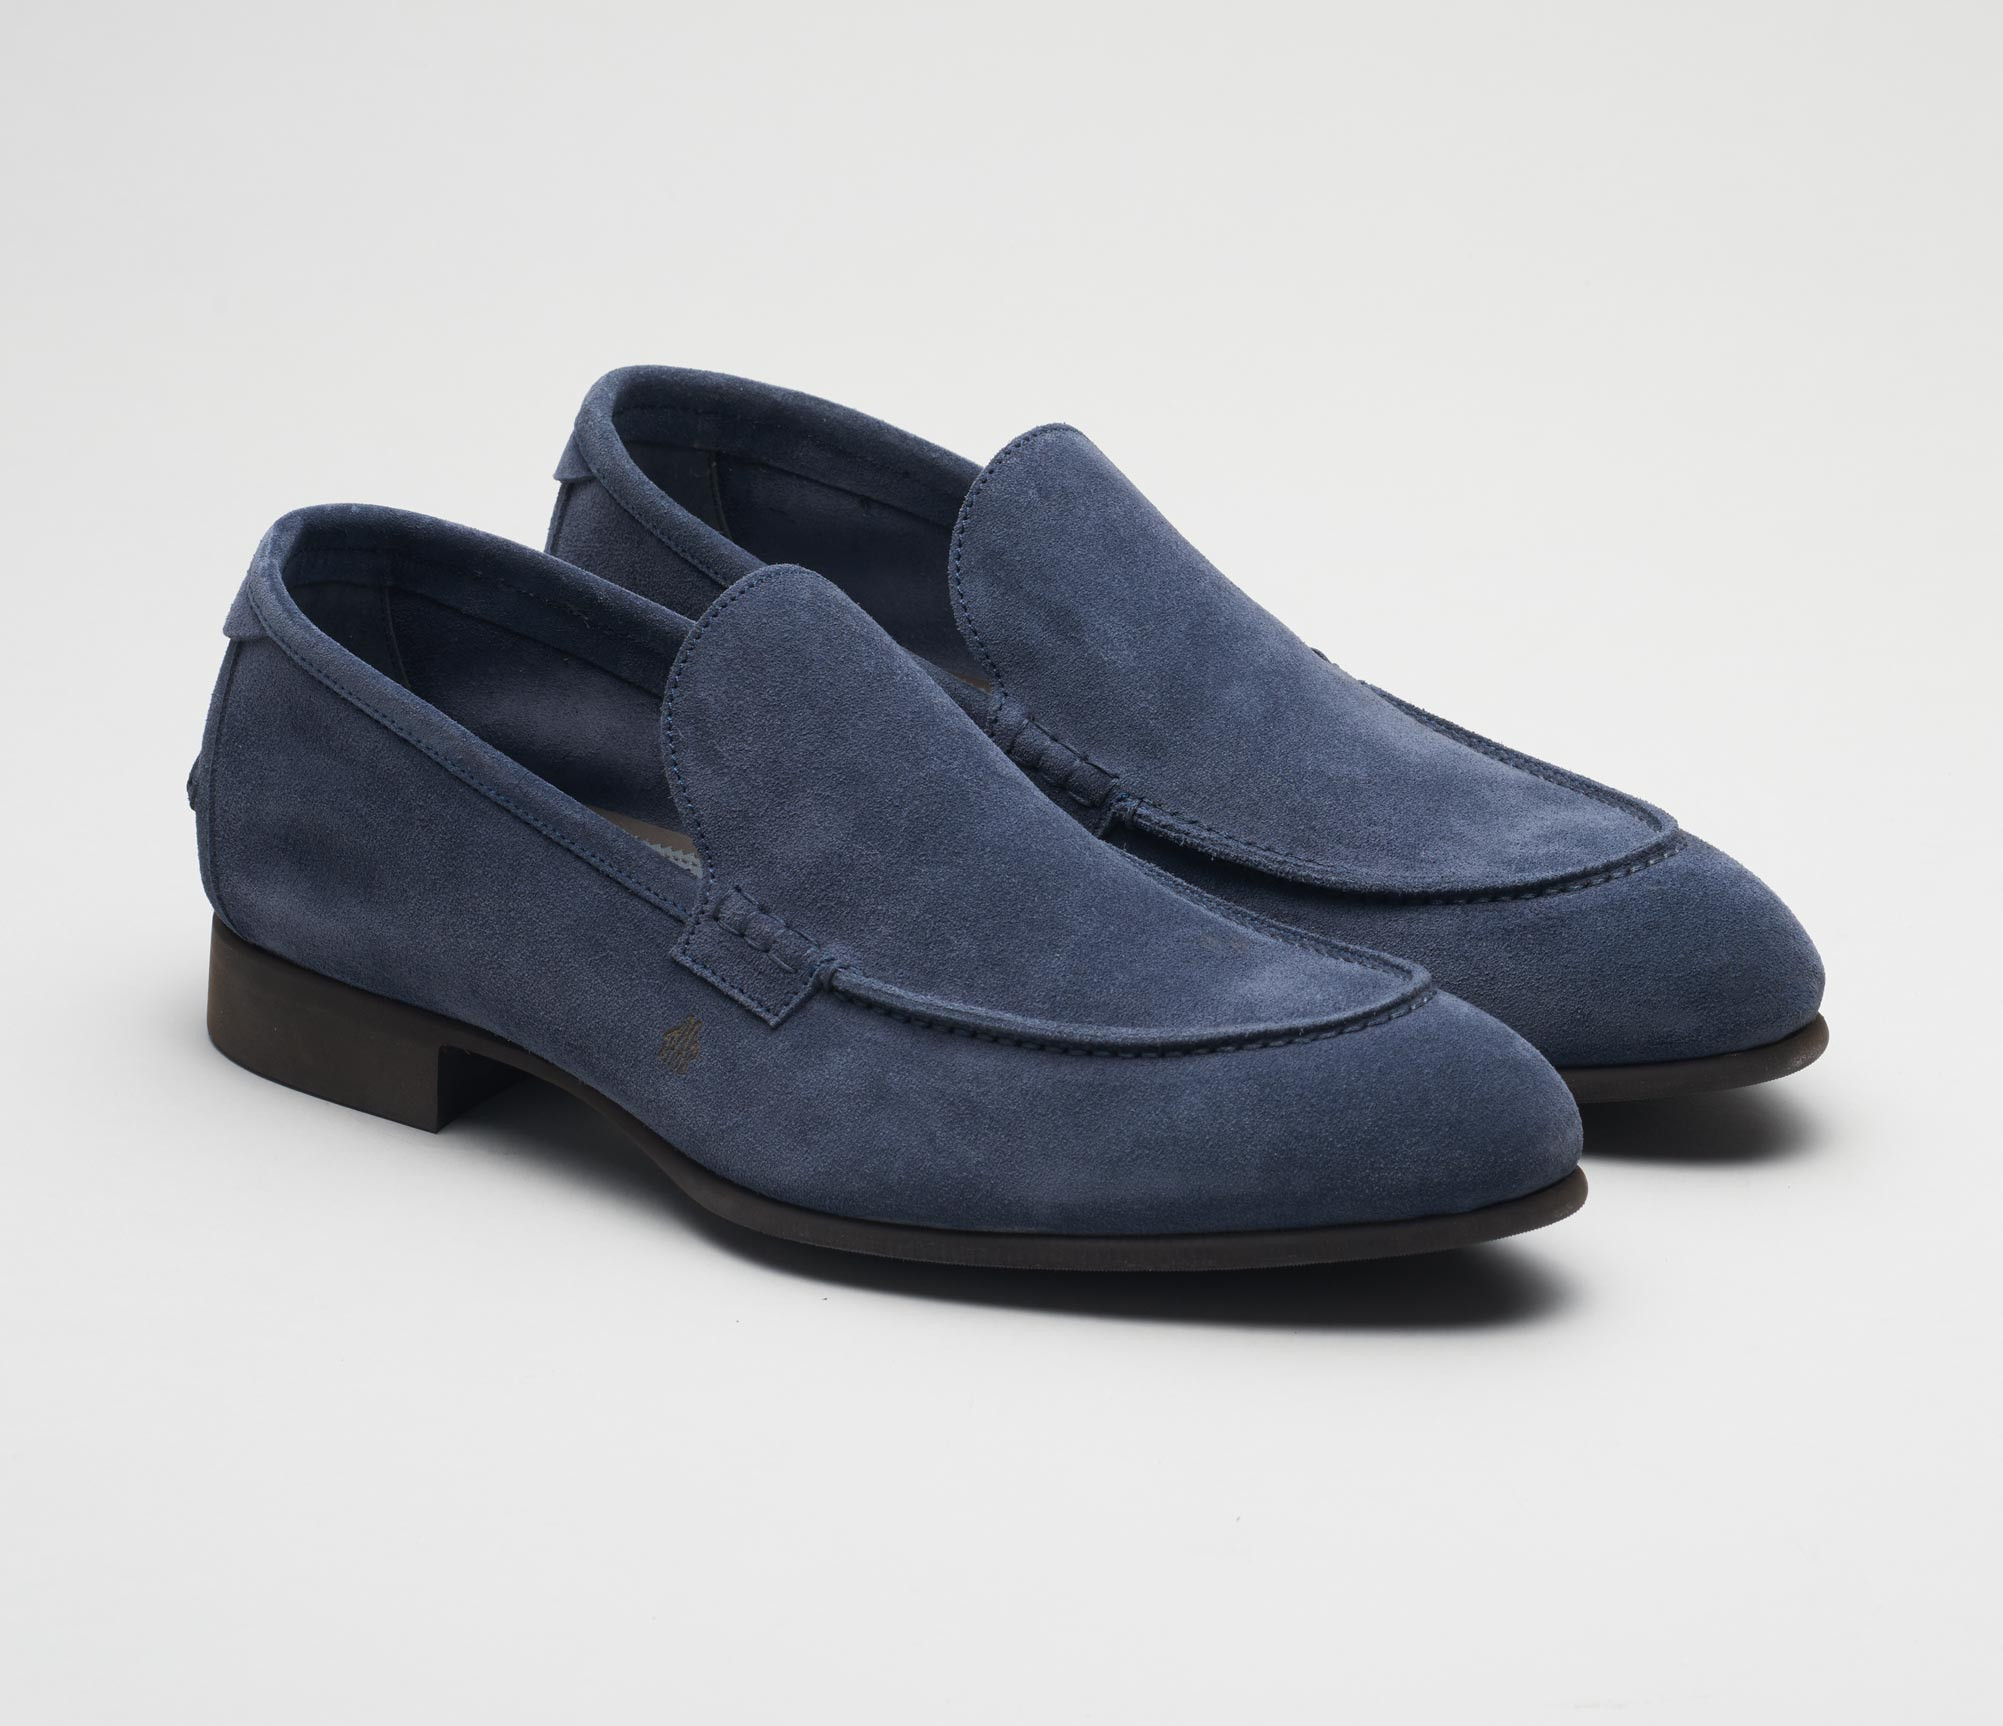 Etna Denim Men's Suede Loafer